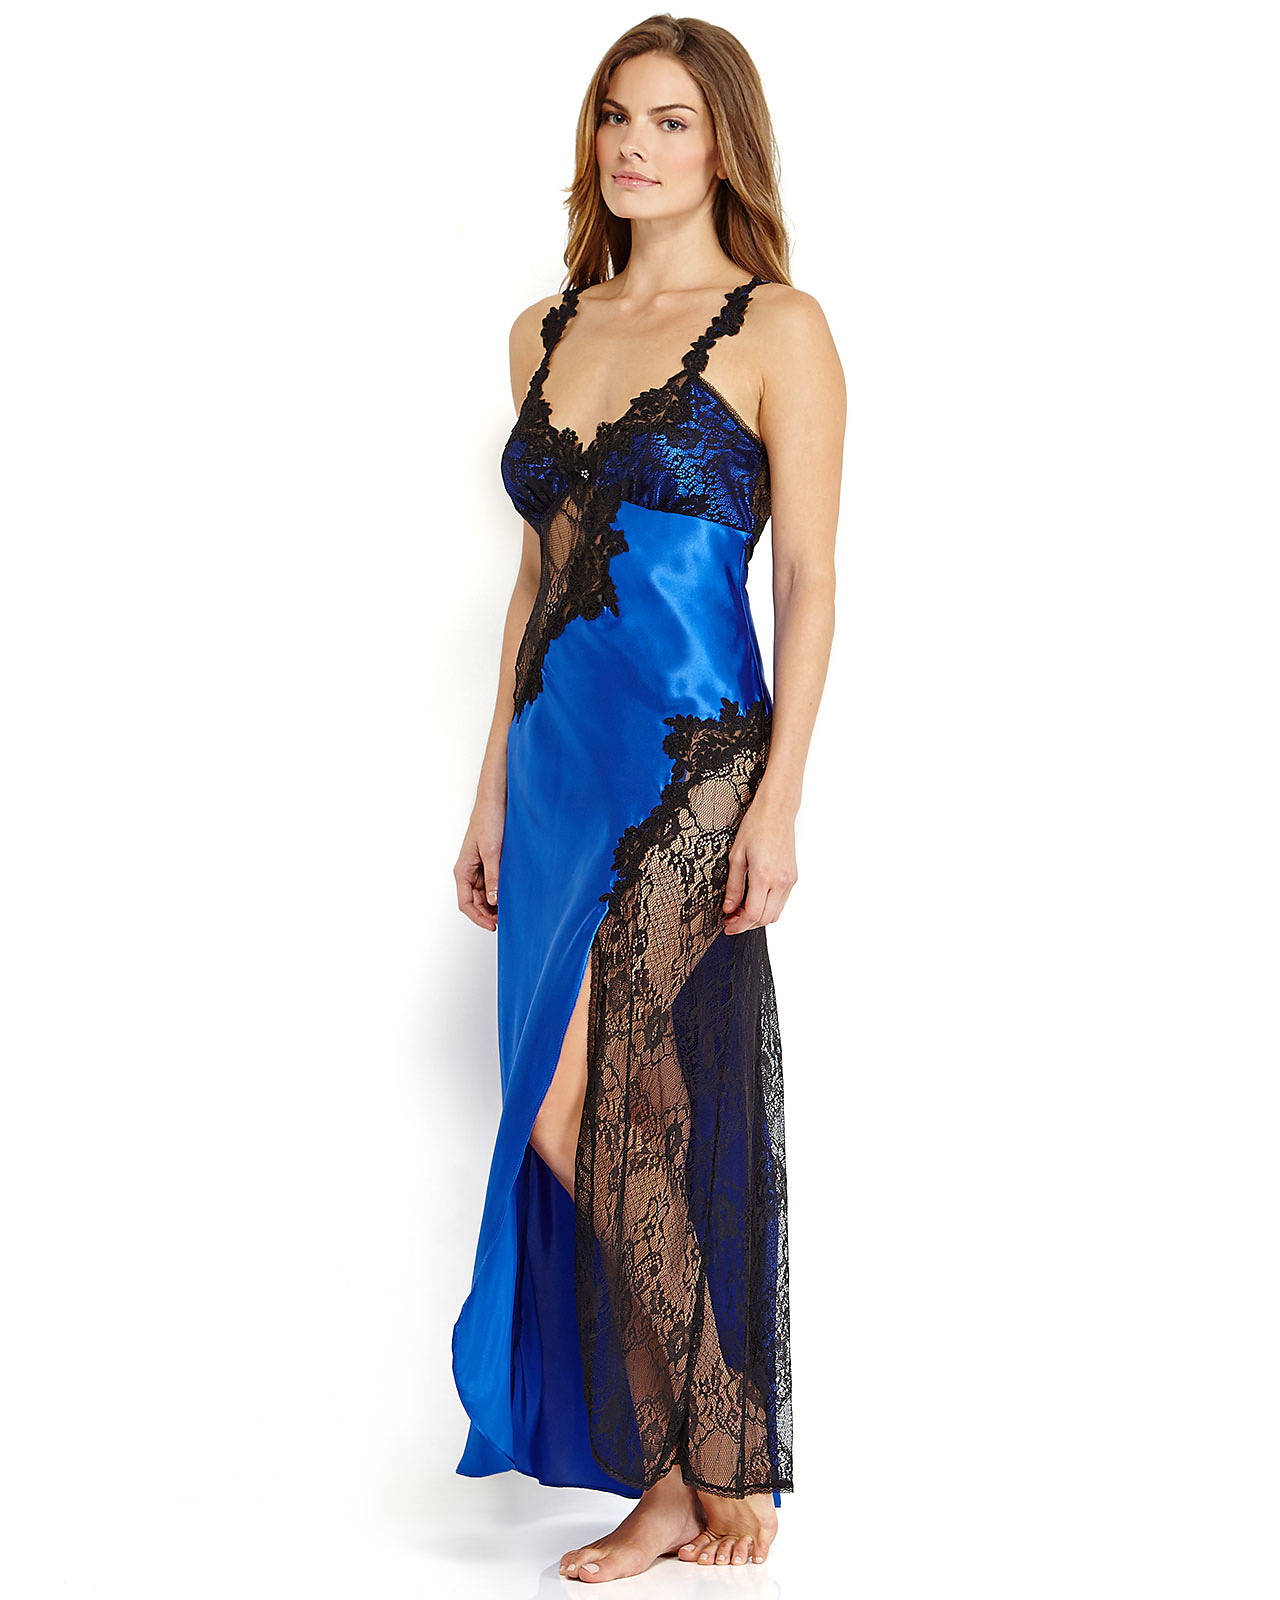 Lyst - Jonquil Royal Blue Black Lace Trim Nightgown in Blue